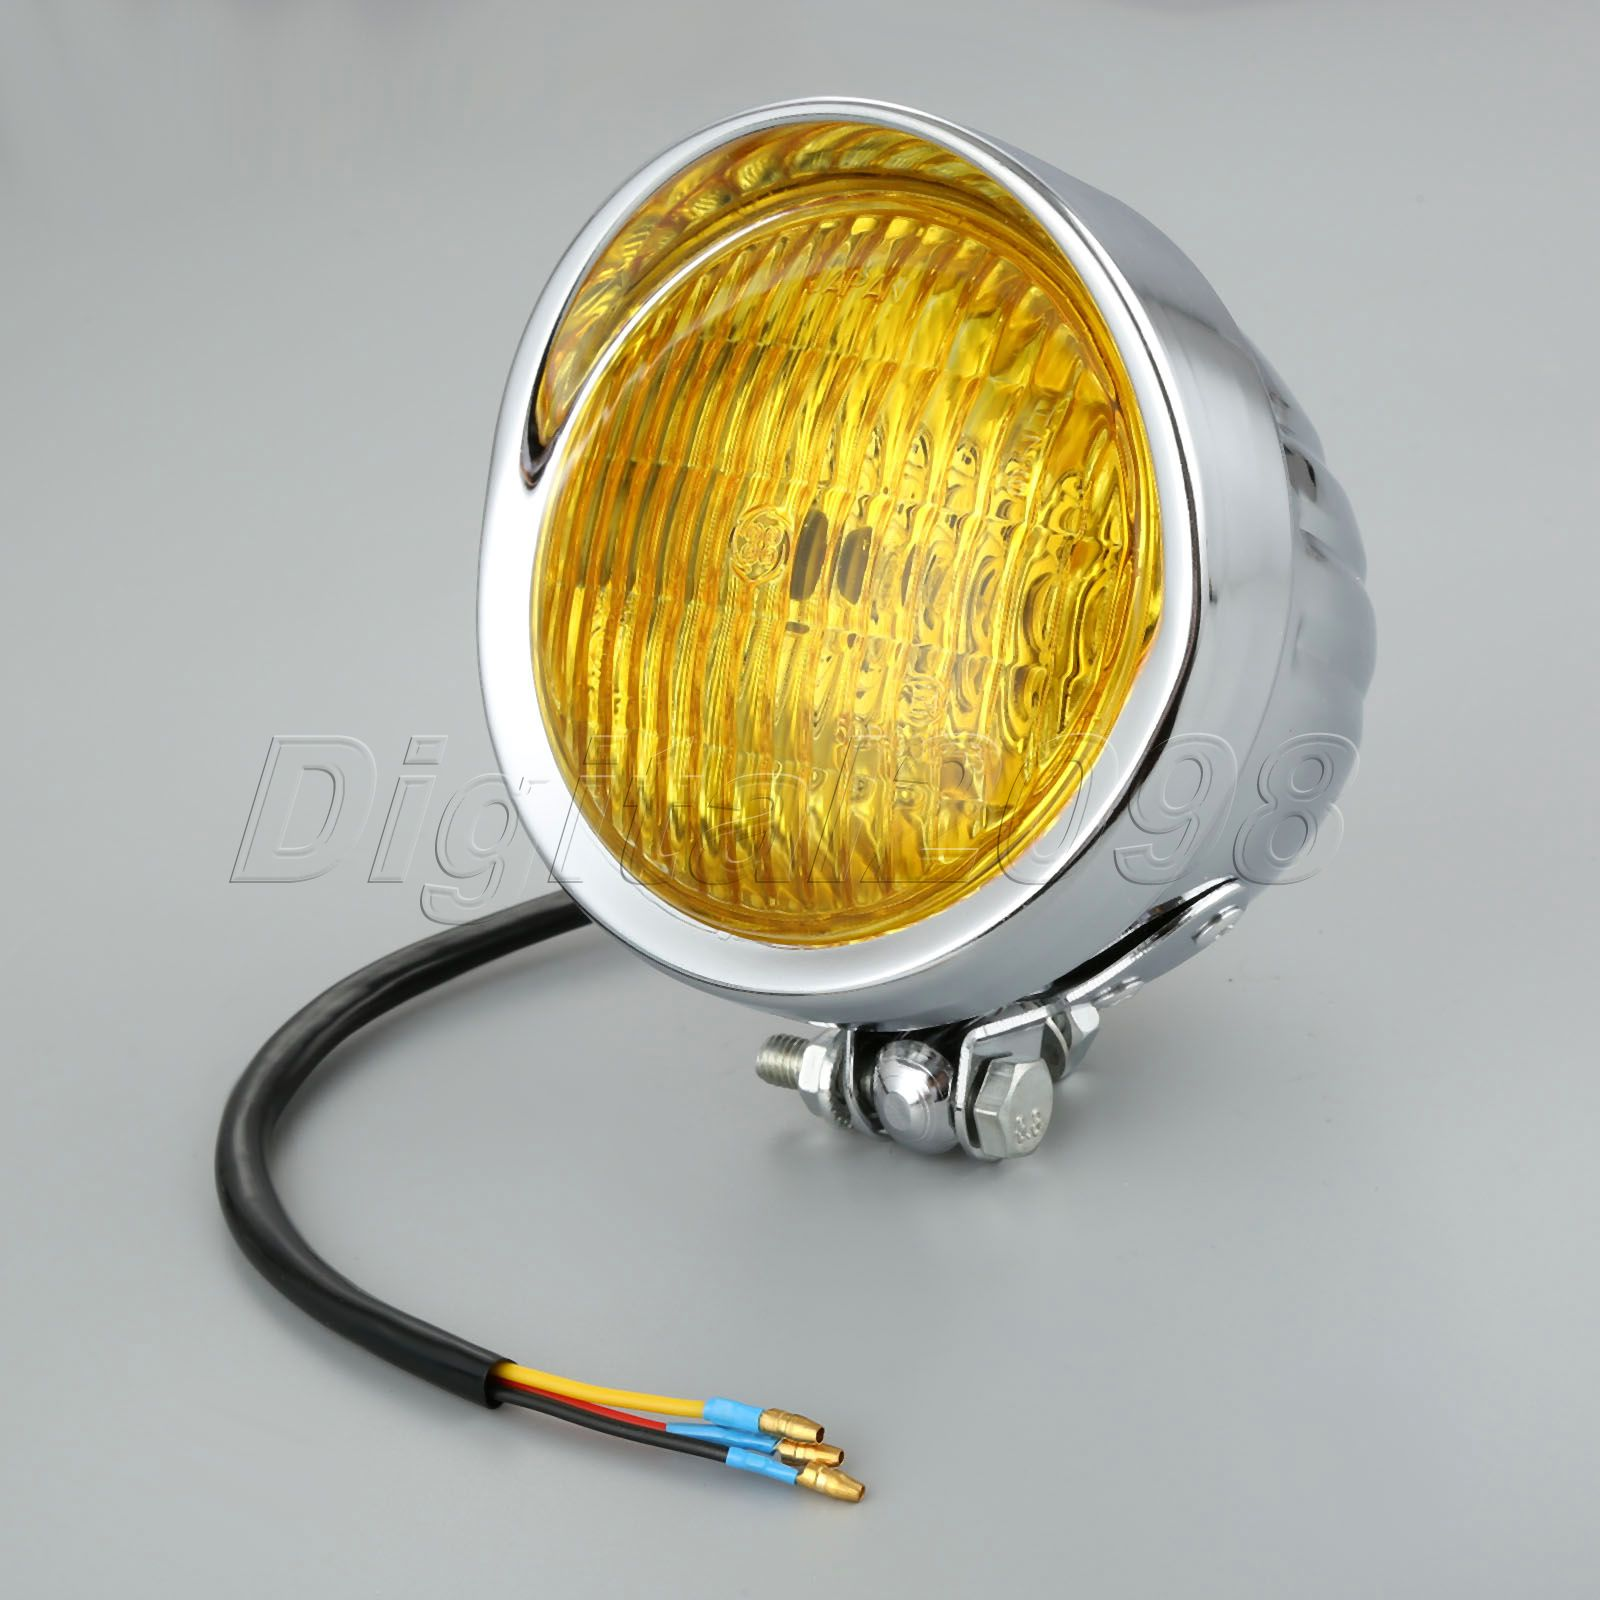 Clear Yellow Lense Motorcycle Headlight Head Light Lamp Hi/Lo Beam For Harley Bobber Choppers Touring Custom Moto Bikes 12V 35W